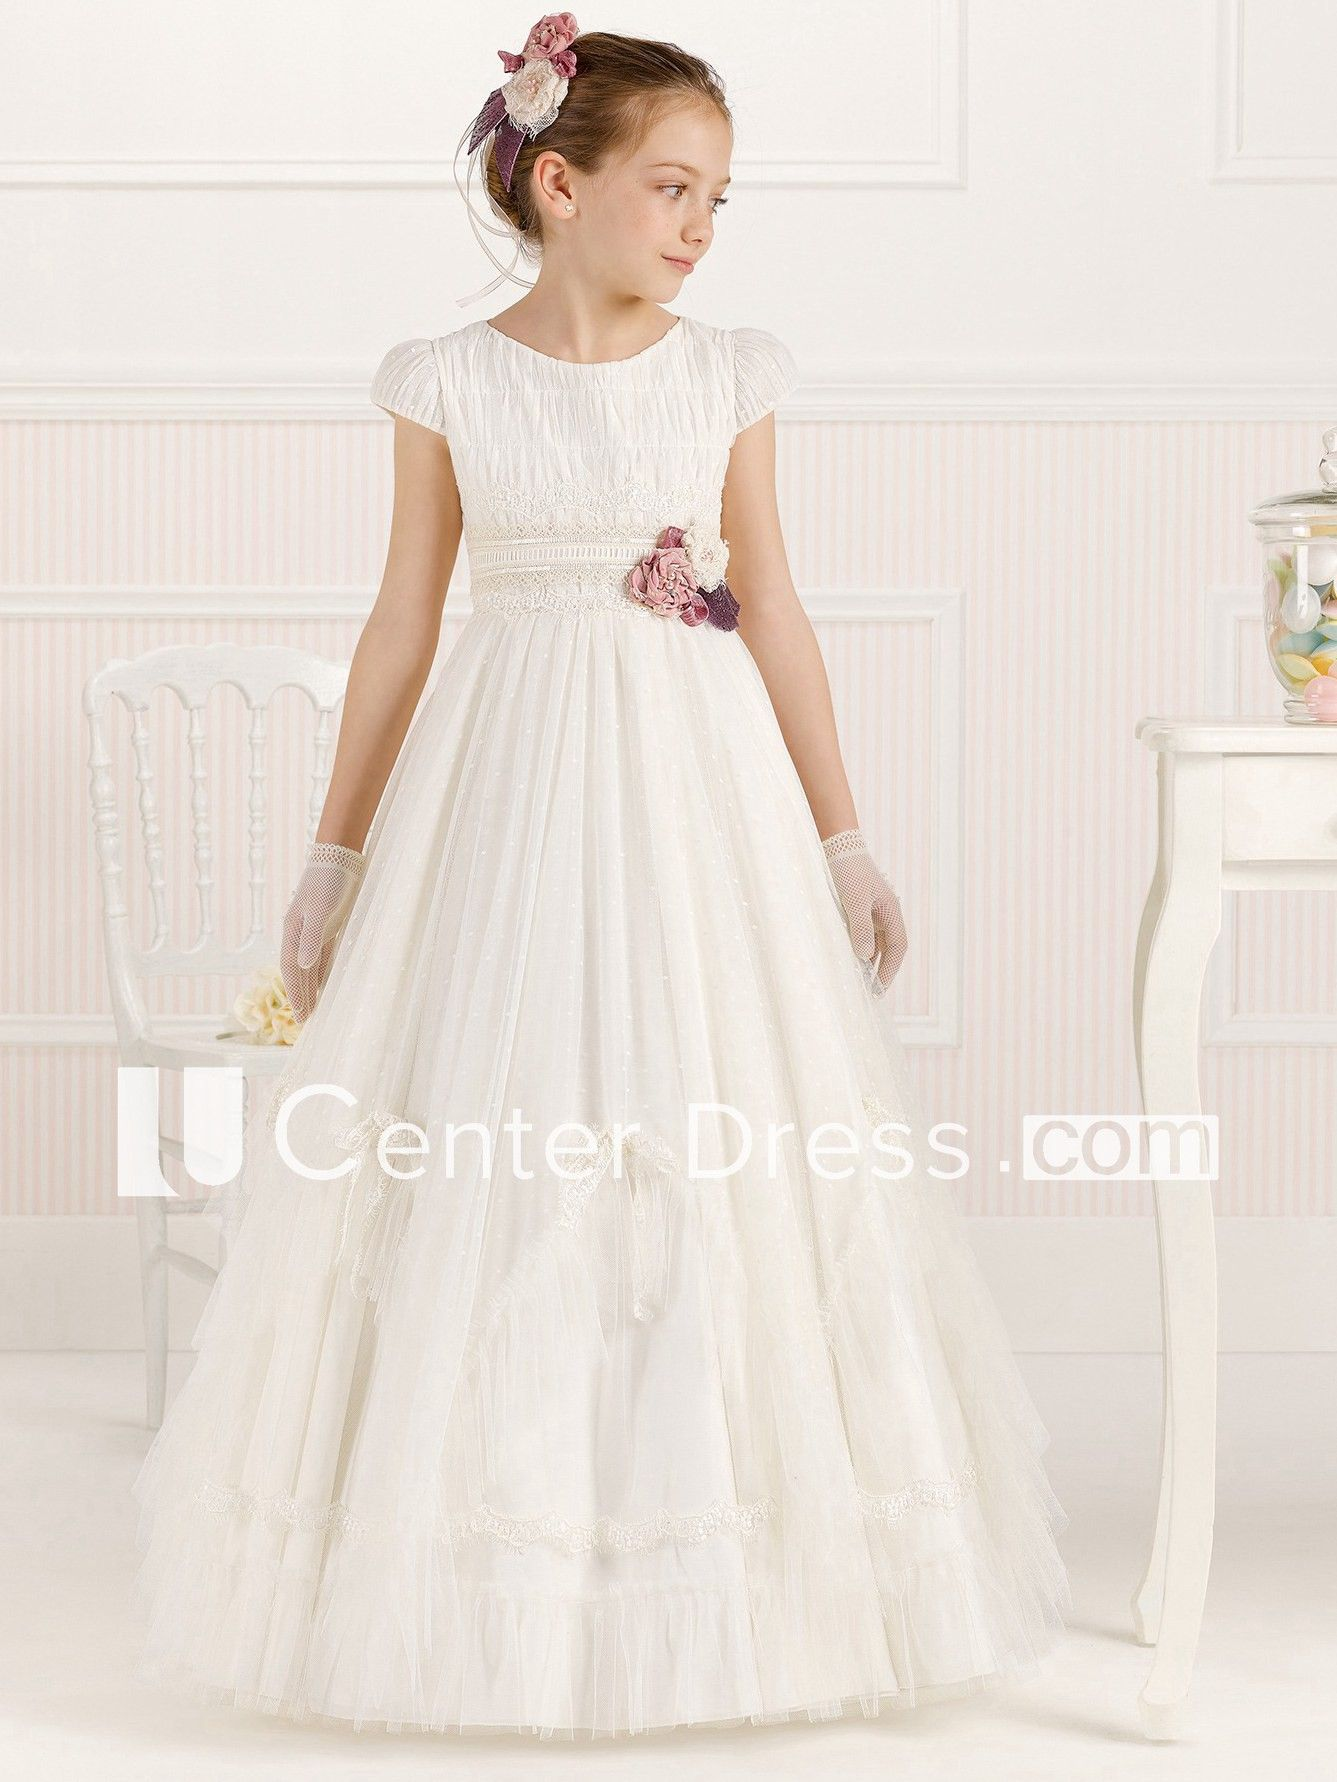 9f125a905 A-Line Lace Long Scoop-Neck Short-Sleeve Tulle Flower Girl Dress With